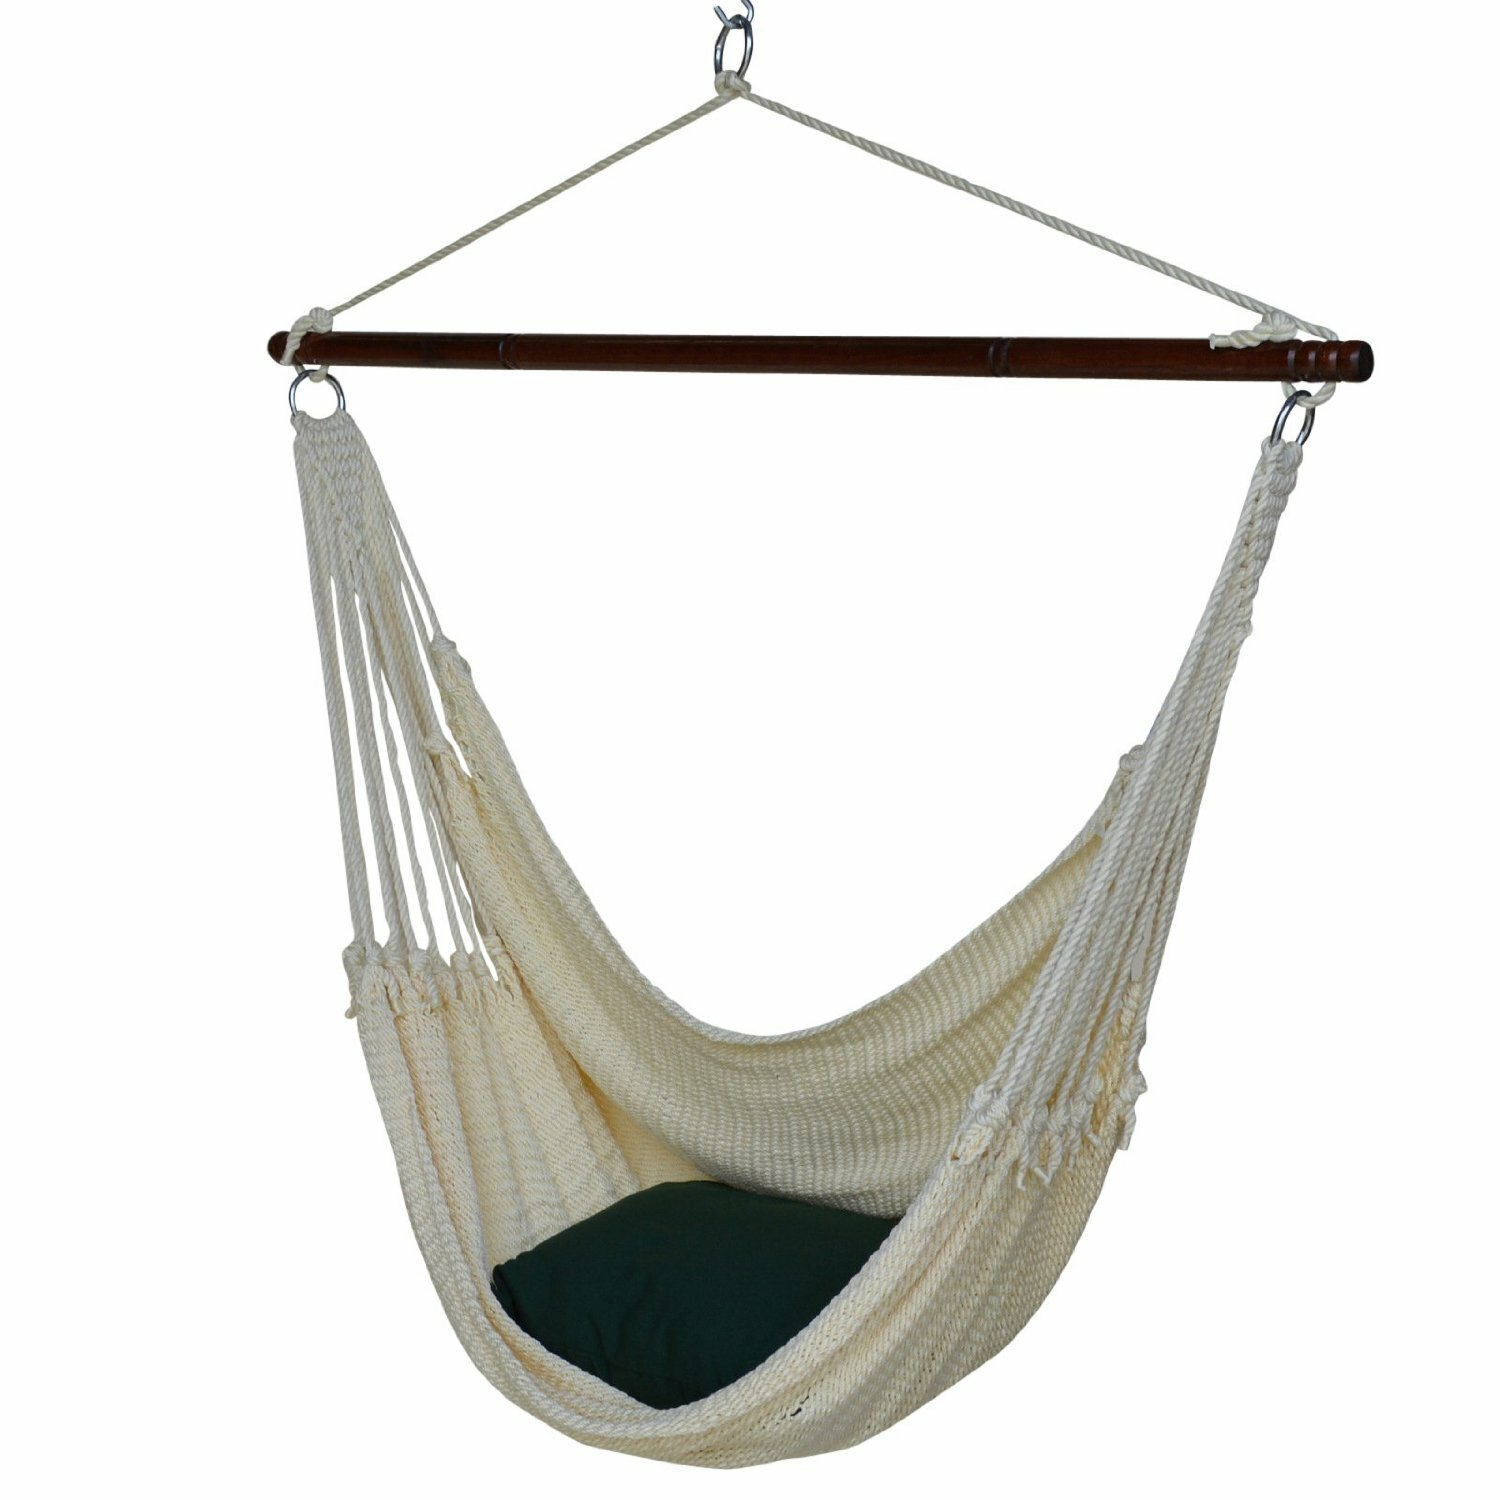 KWHammocks Jumbo Caribbean Hammock Chair amp Reviews Wayfair : Jumbo Caribbean Hammock Chair JCHC from www.wayfair.com size 1500 x 1500 jpeg 184kB